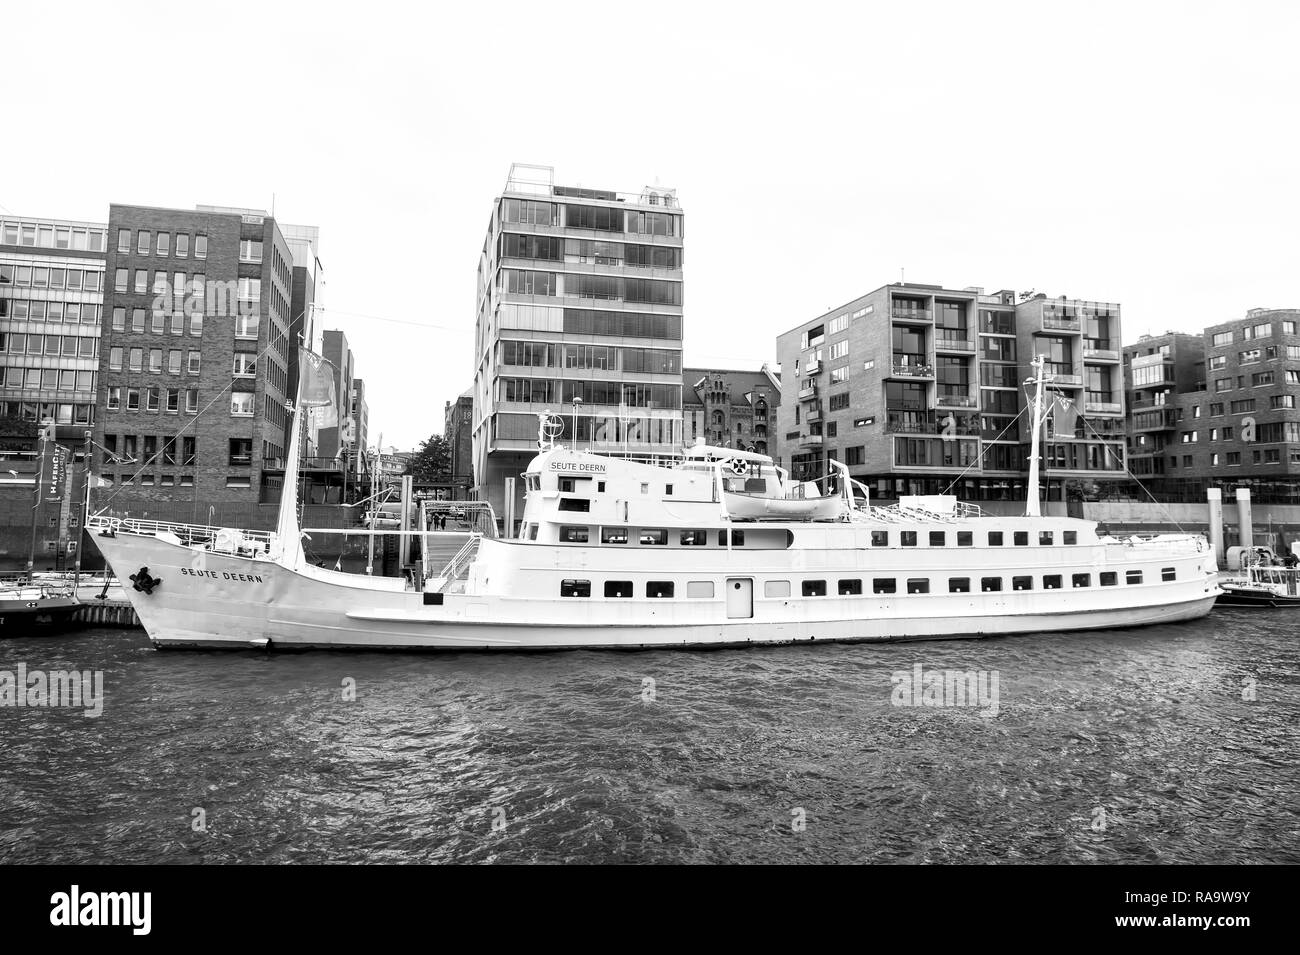 Hamburg, Germany - September 07, 2017: River transport, transportation. Ship at ferry pier on cityscape background. Water travel, travelling trip Vacation discovery wanderlust Stock Photo